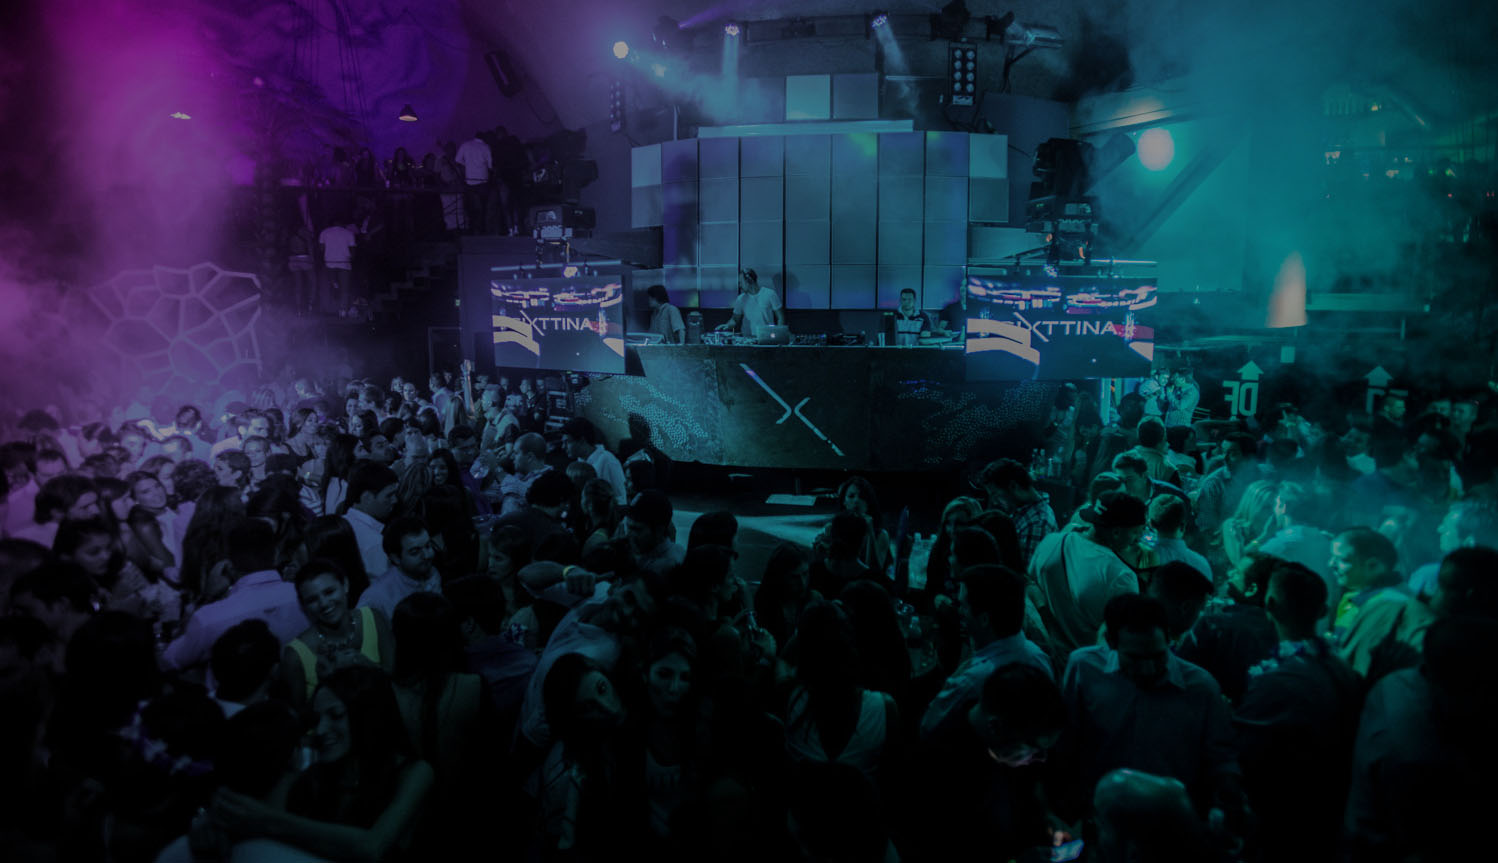 Top 6 Bachelor Party Medellin Nightclubs